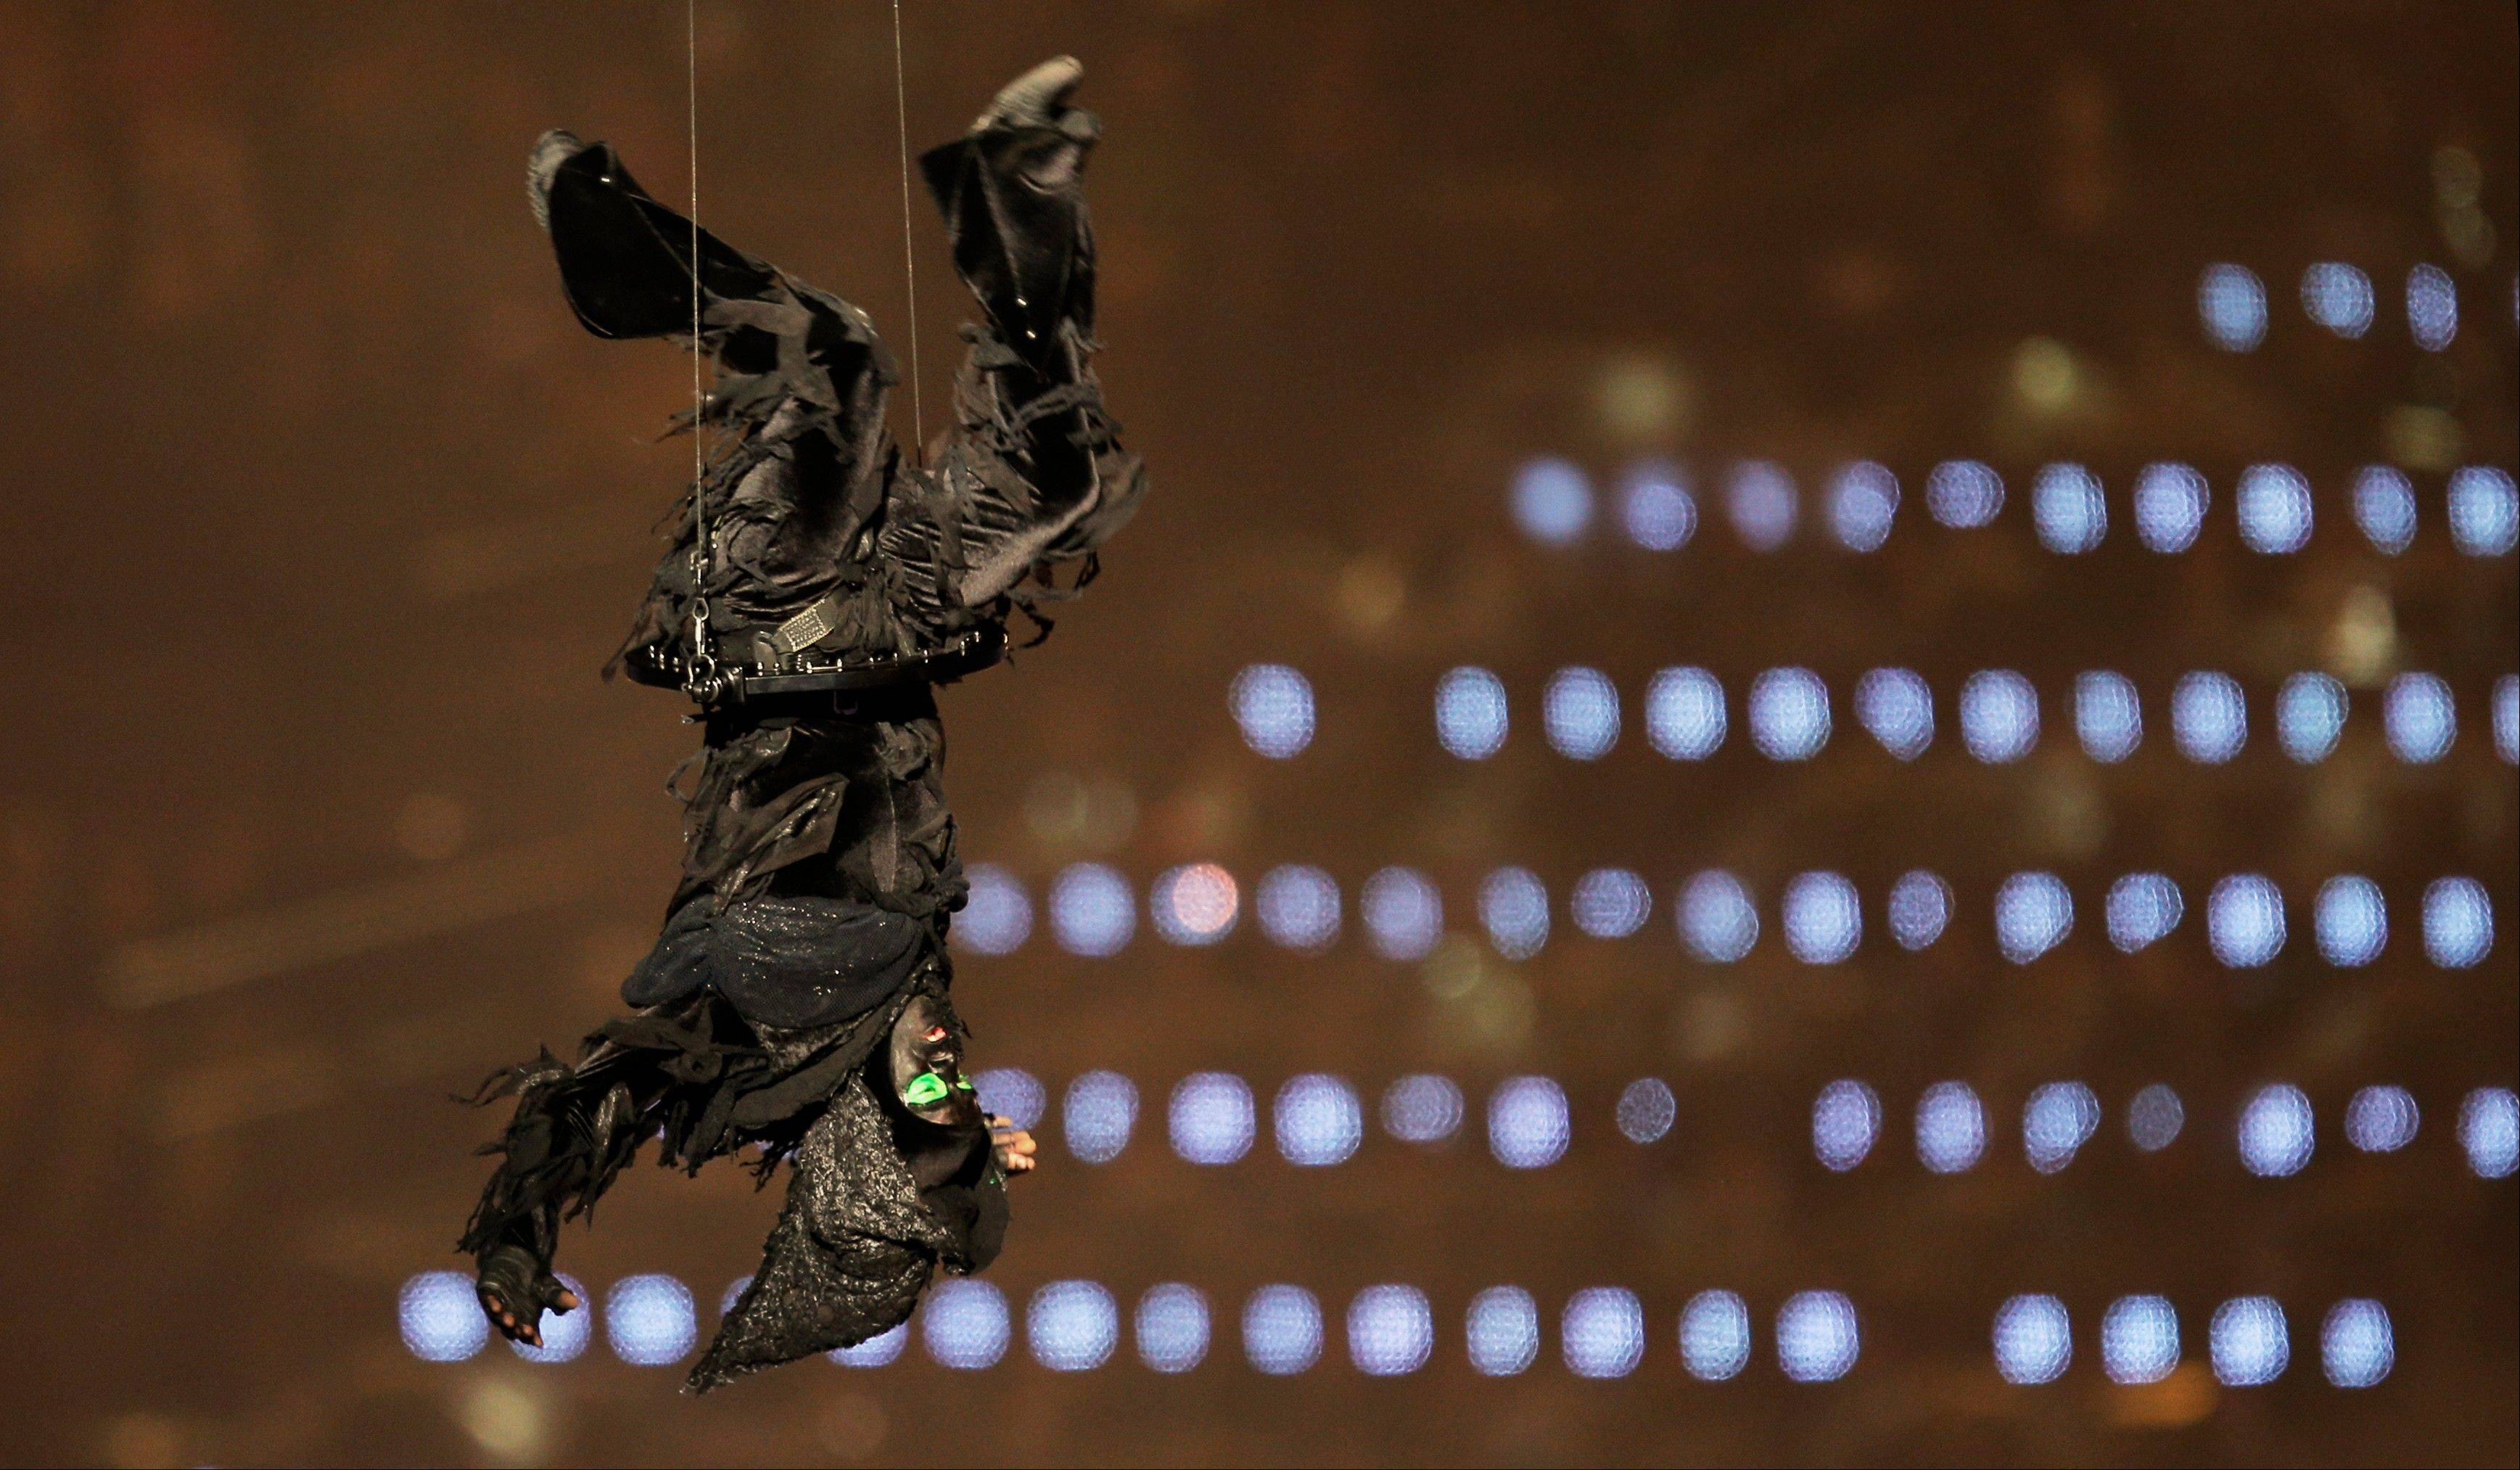 An actor takes flight during a performance at the Opening Ceremony at the 2012 Summer Olympics, Friday, July 27, 2012, in London.